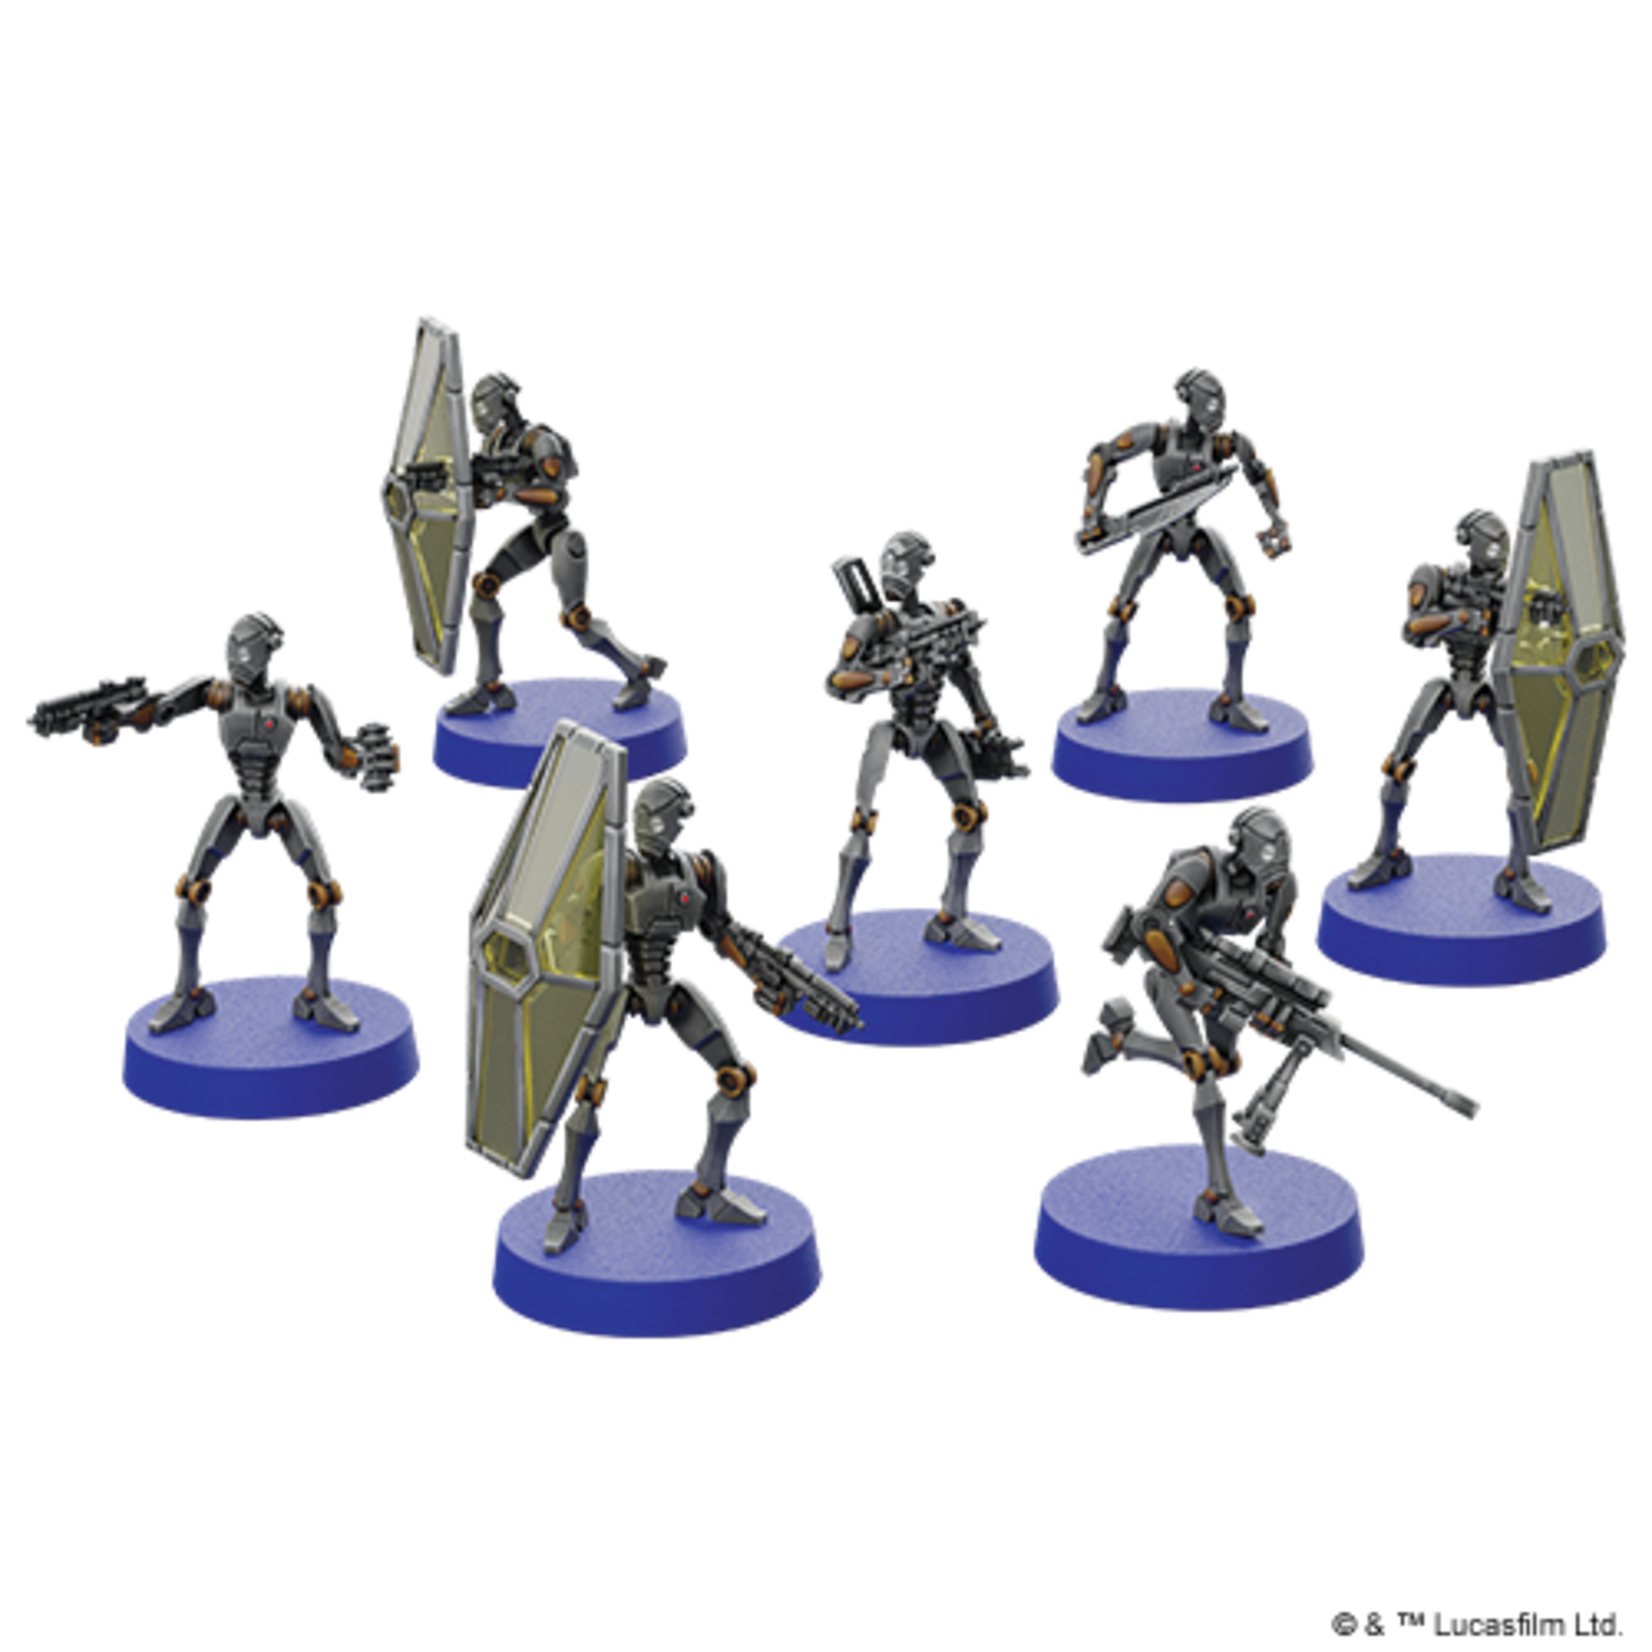 Asmodee BX-series Droid Commandos Unit Expansion